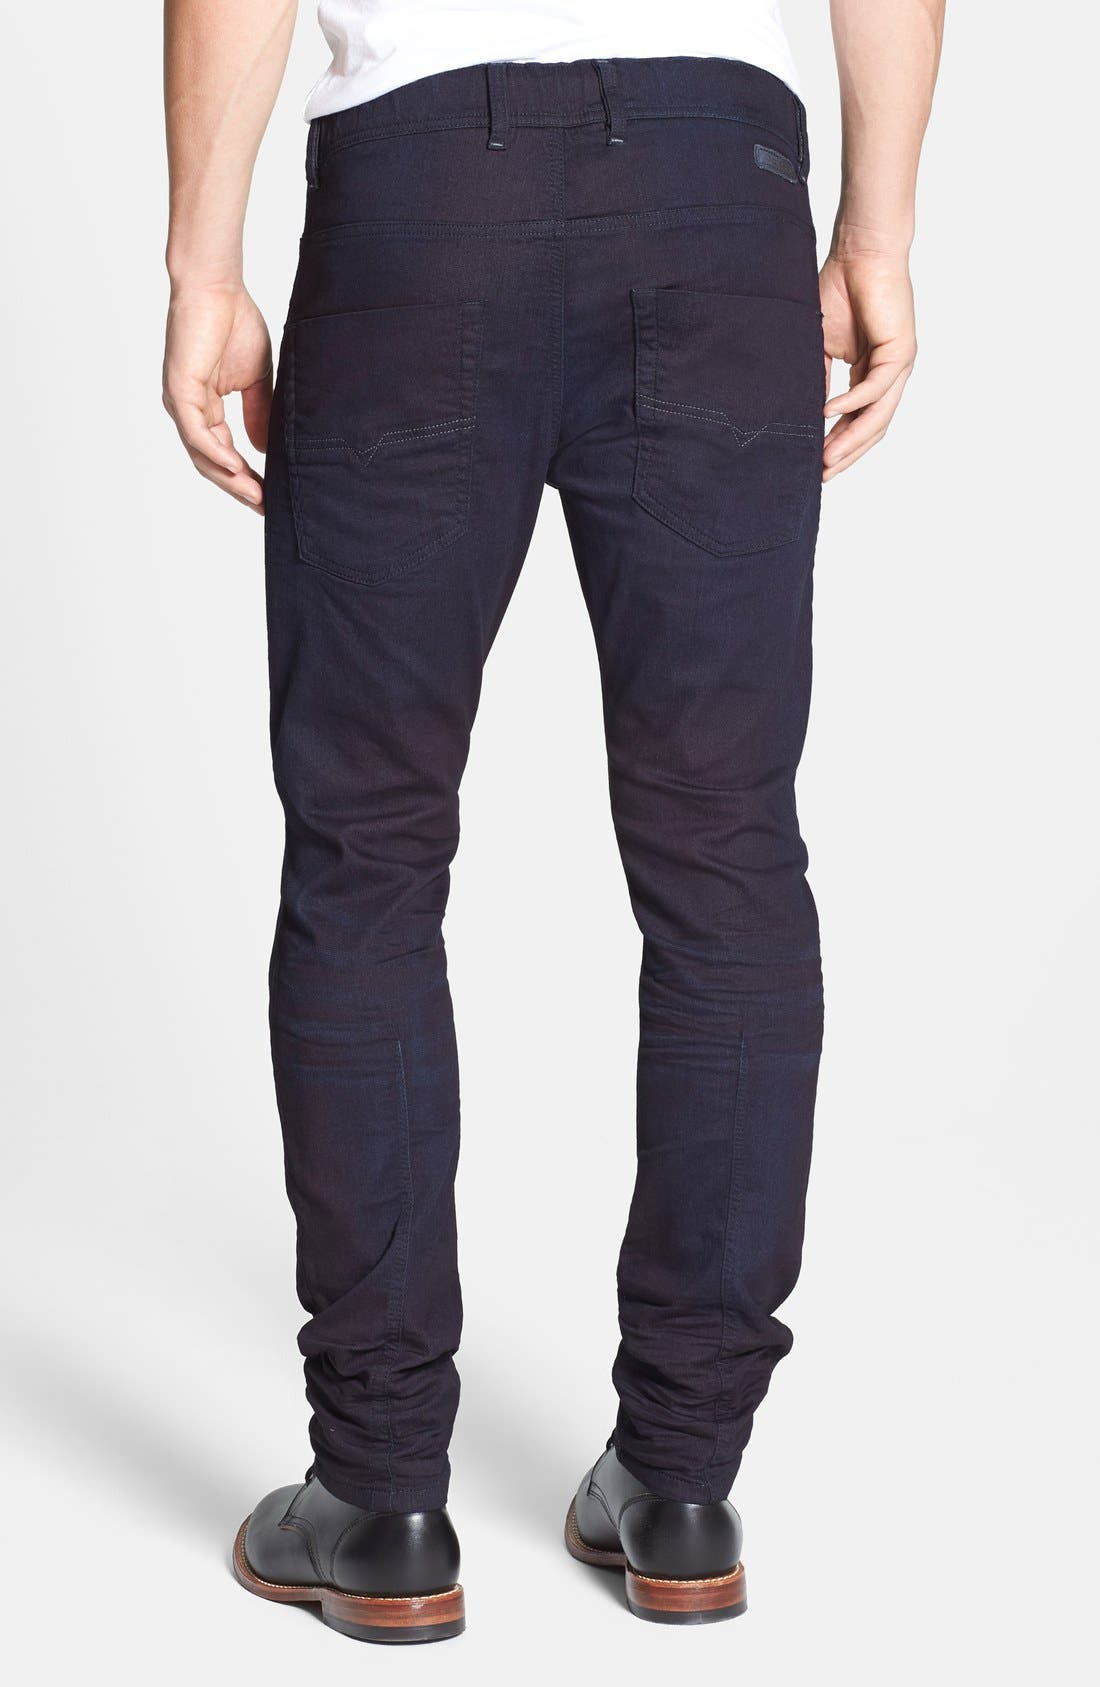 Krooley Jogg Slouchy Skinny Fit Jeans,                             Alternate thumbnail 4, color,                             0829P